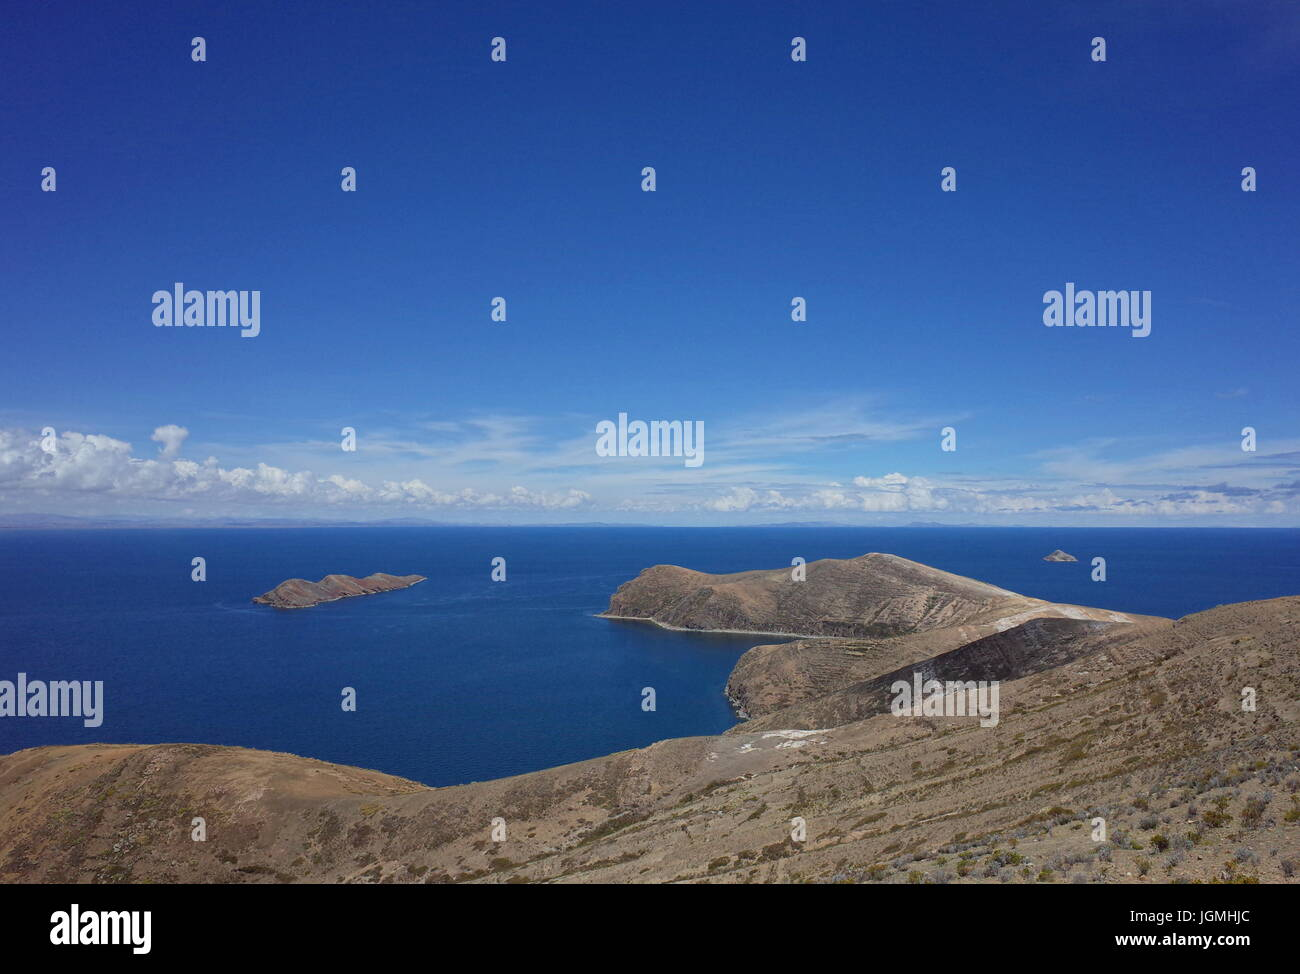 Breath taking view of Lake Titicaca as seen from the Isla del Sol - Stock Image